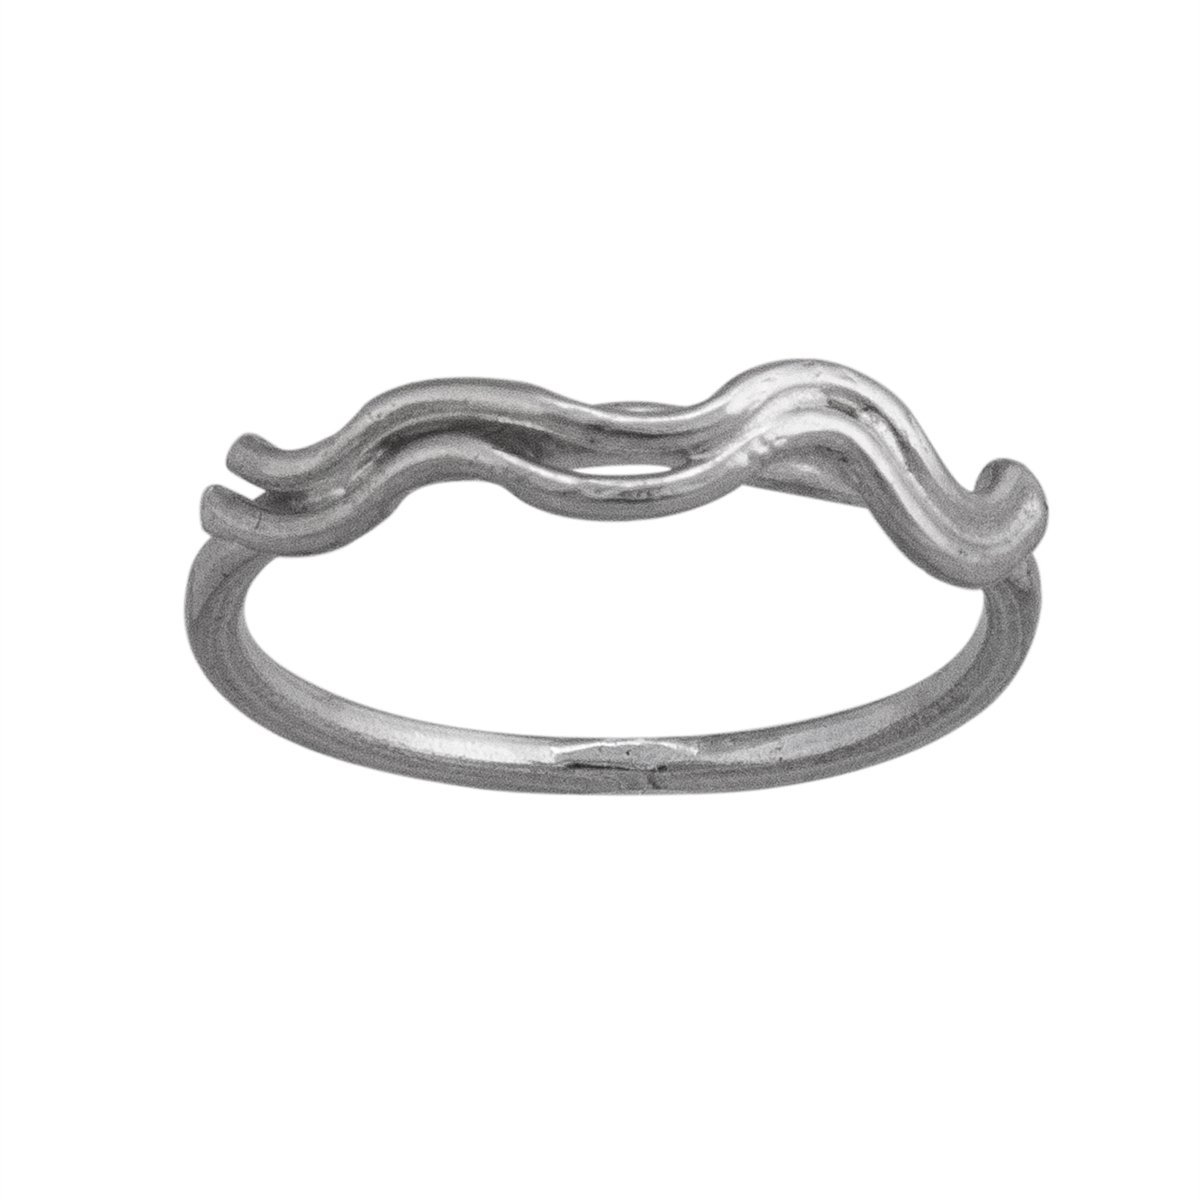 sterling-silver-aquarius-ring - 1 - Charles Albert Inc